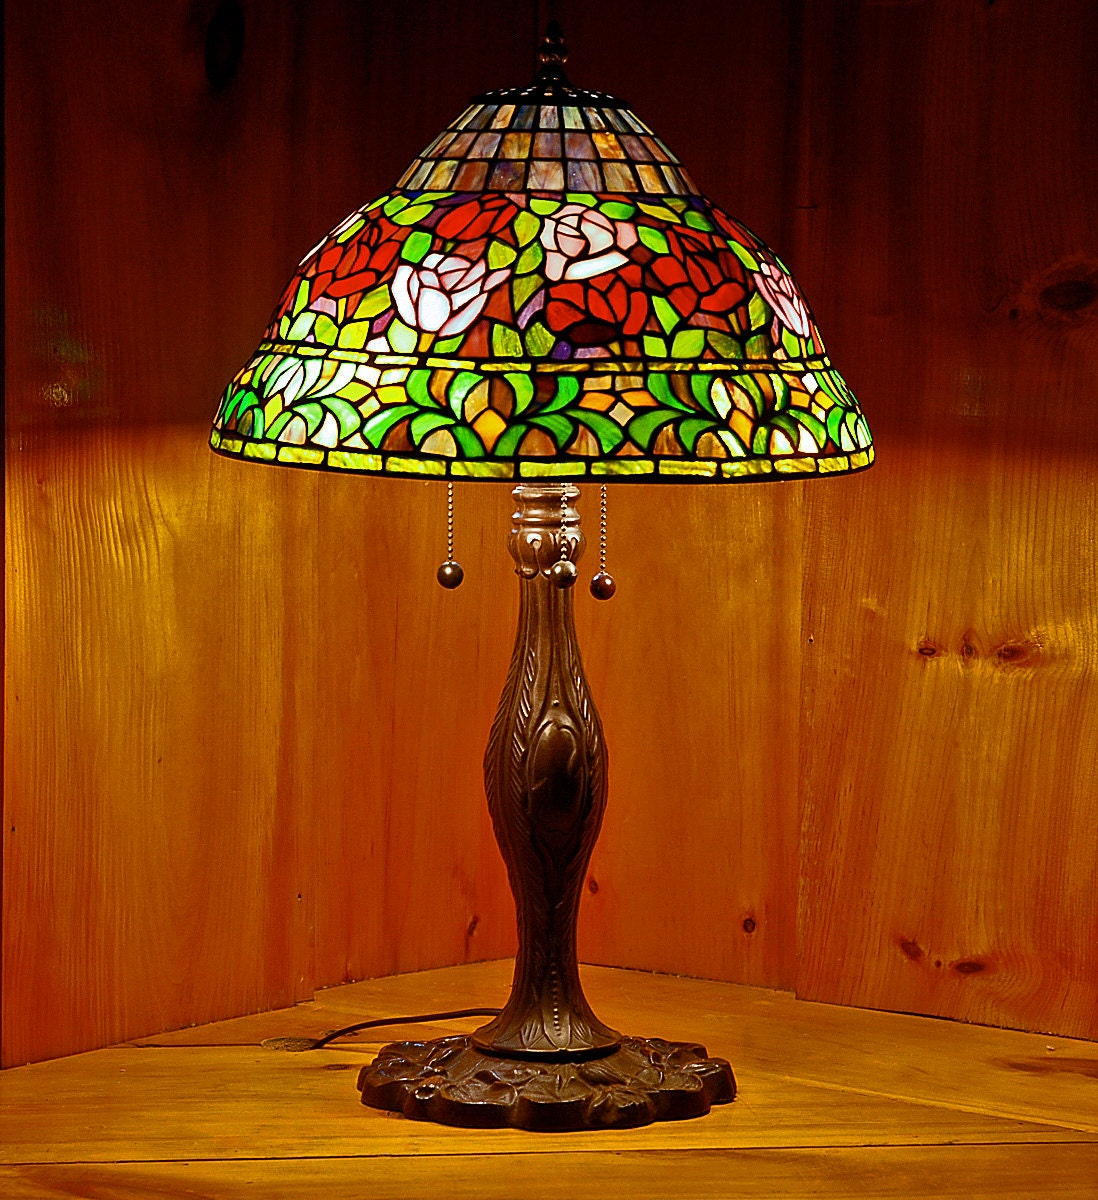 15 rose bell top stained glass lamp shade by hiddengalleryart. Black Bedroom Furniture Sets. Home Design Ideas